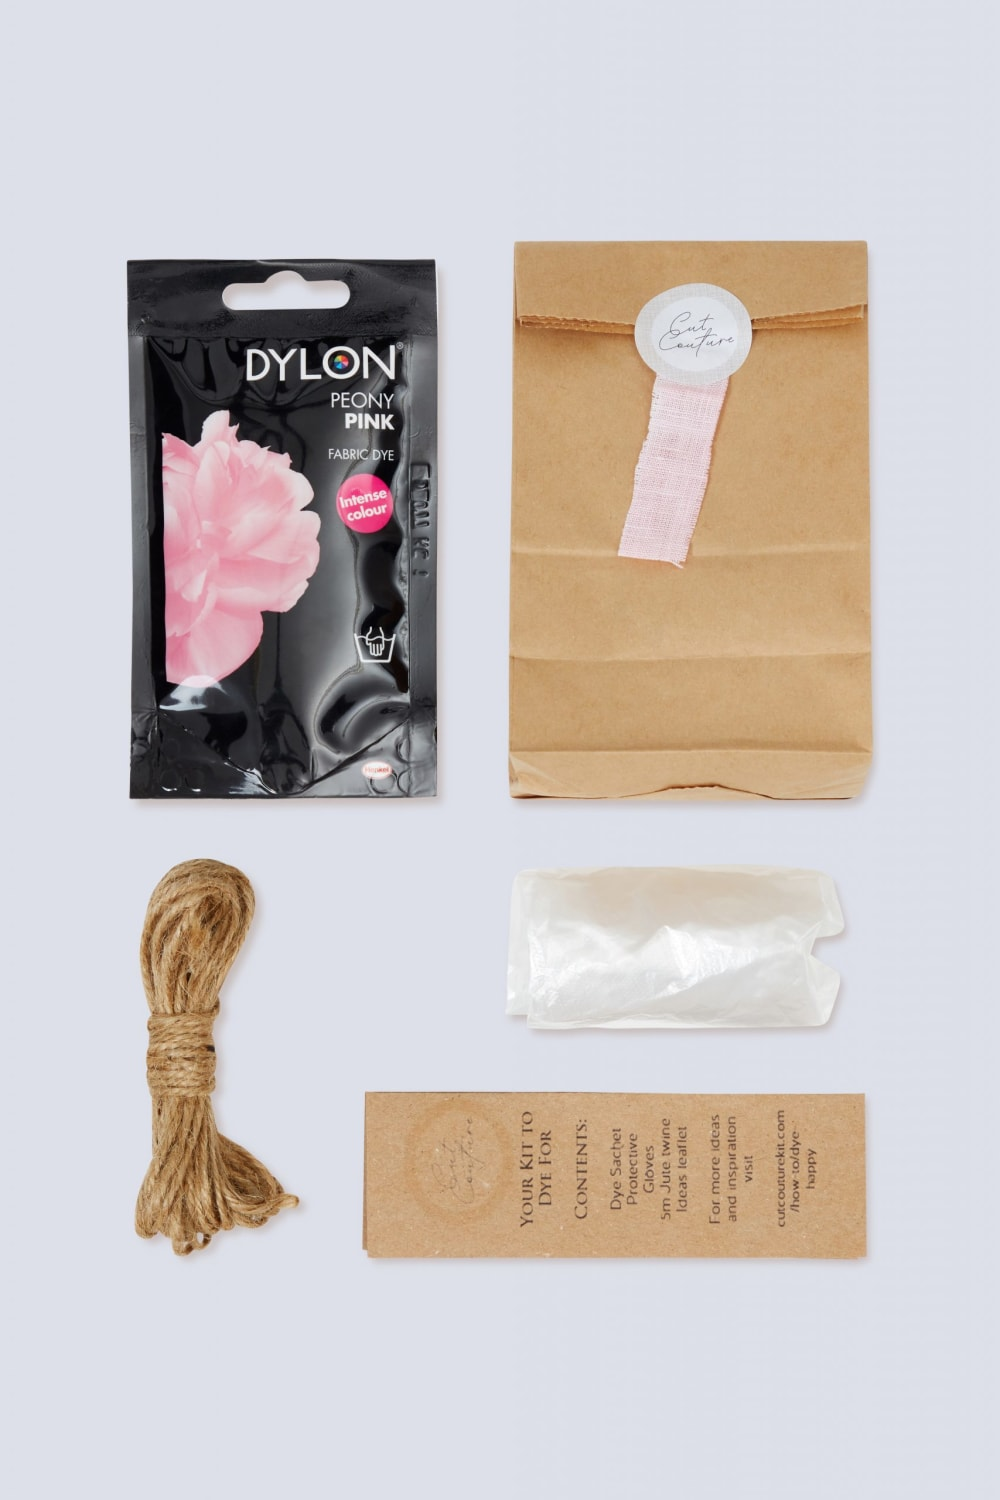 Peony Pink Dylon dye jute twine gloves information leaflet with bag and colour swatch